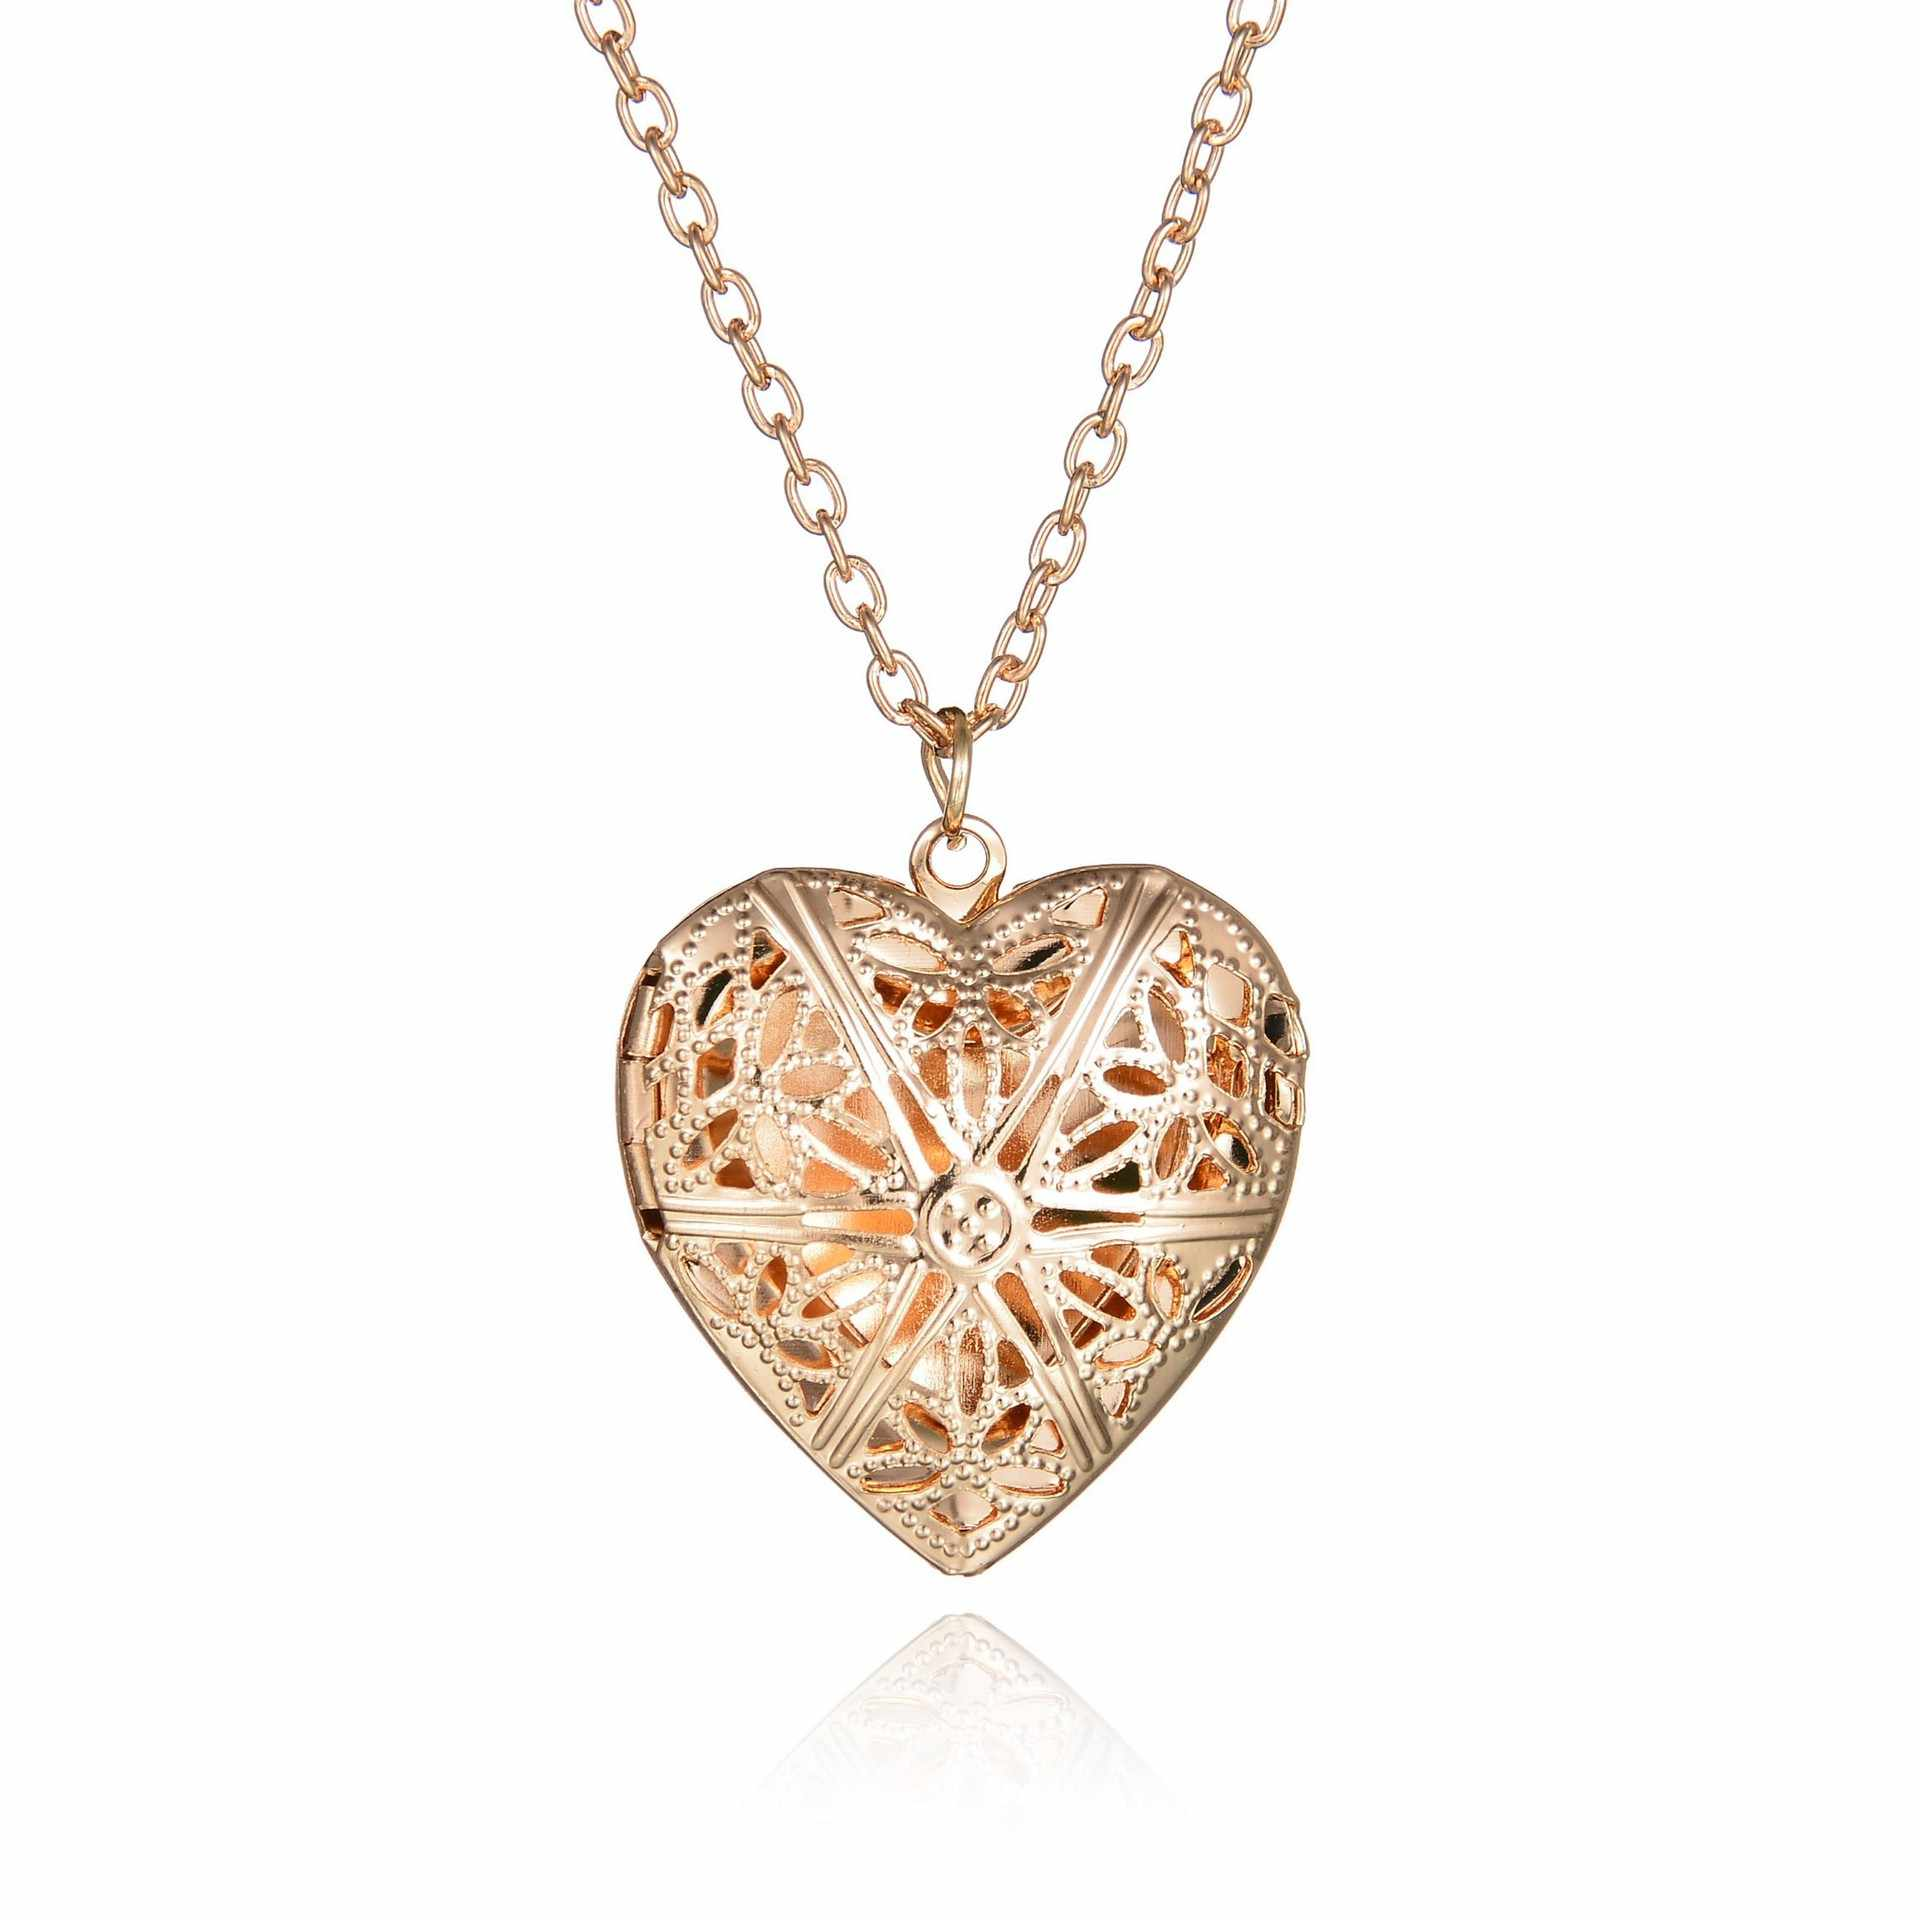 Hollow Heart Locket Necklace Pendant Metal Gold Silver Photo Frame Memory Romantic Love Floating Pendant Necklace for Women Gift